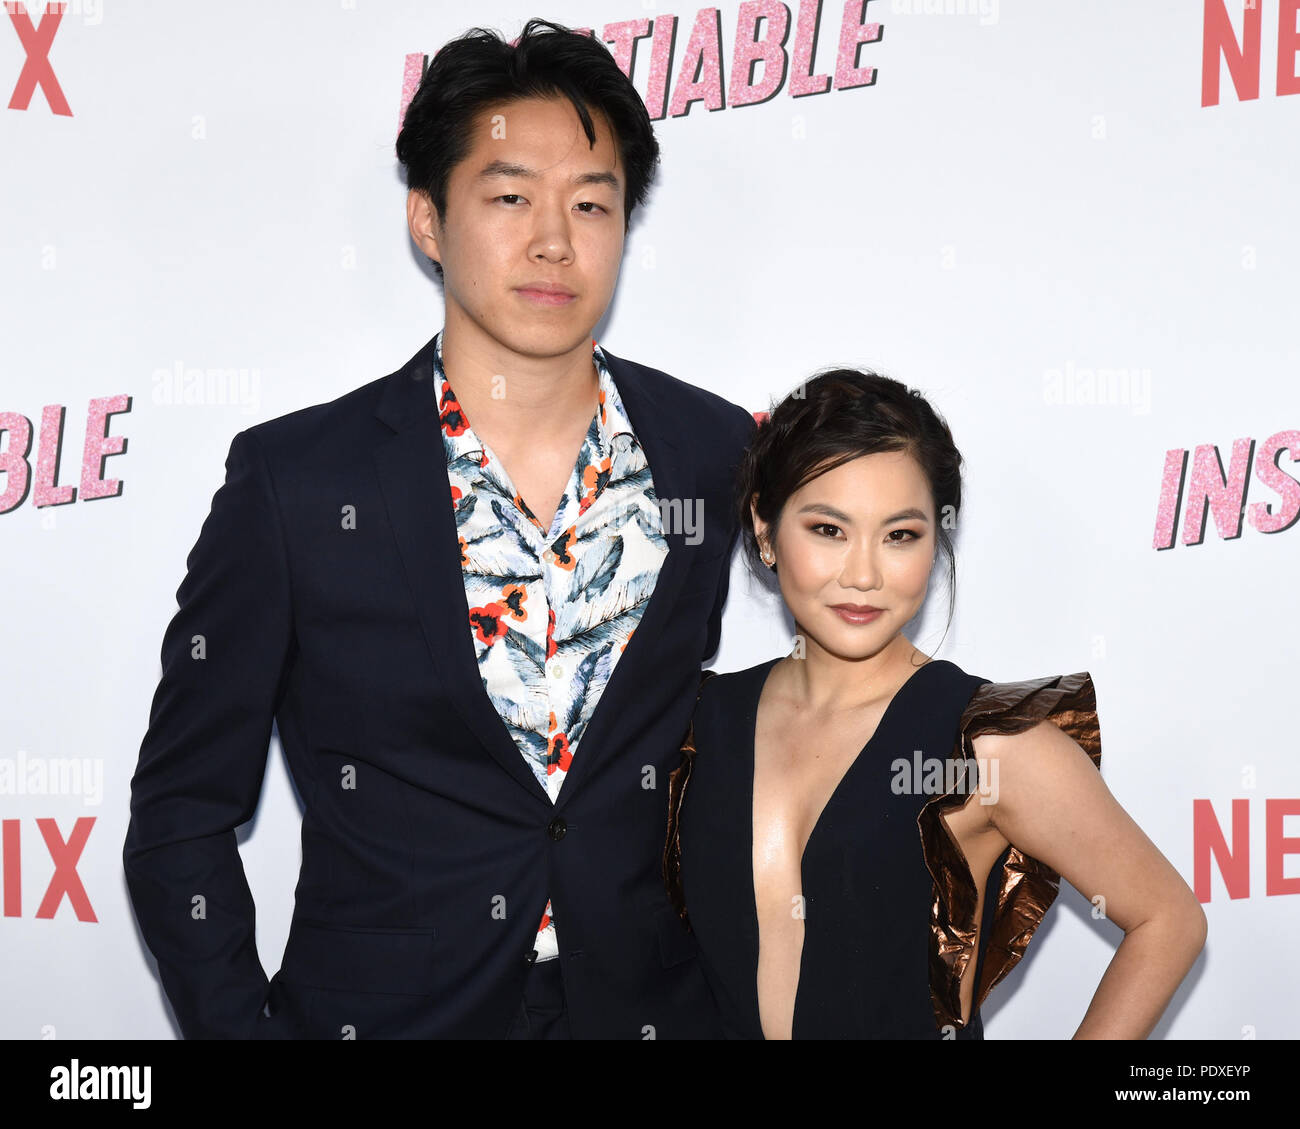 Hollywood California Usa 9th Aug 2018 Daniel Kang And Irene Choi Attends Netflix S Insatiable Season 1 Premiere At Arclight Hollywood Credit Billy Bennight Zuma Wire Alamy Live News Stock Photo Alamy Besides that, she has featured in comedy movies like fifty shades of black, the outdoorsman. https www alamy com hollywood california usa 9th aug 2018 daniel kang and irene choi attends netflixs insatiable season 1 premiere at arclight hollywood credit billy bennightzuma wirealamy live news image215097450 html